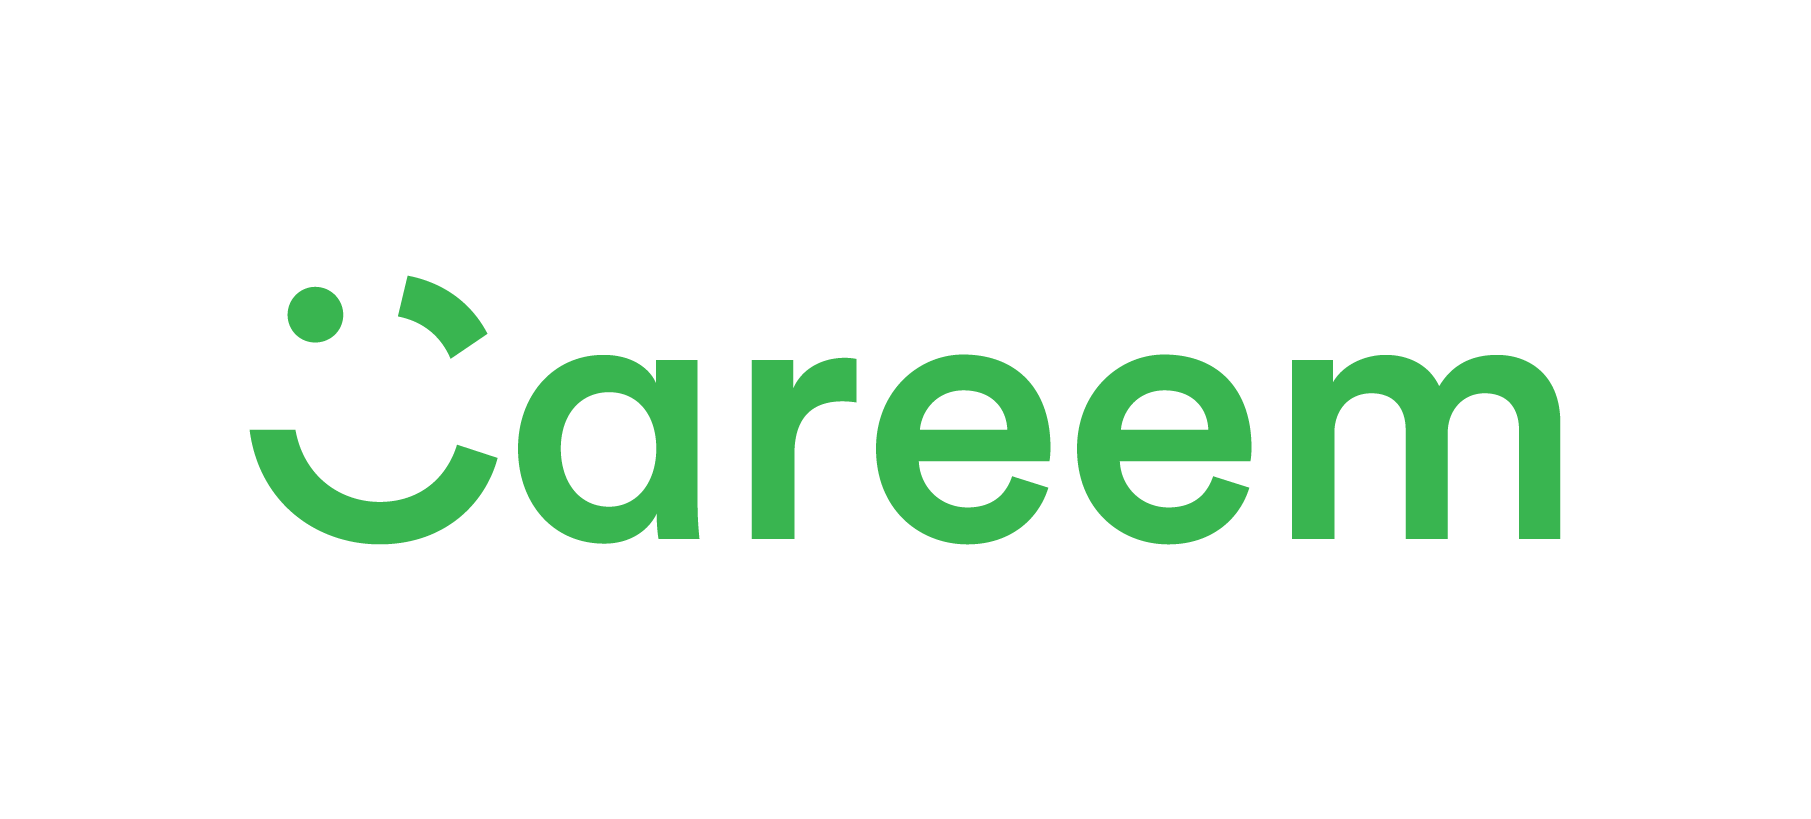 Careem promo codes for Society 6 discount code